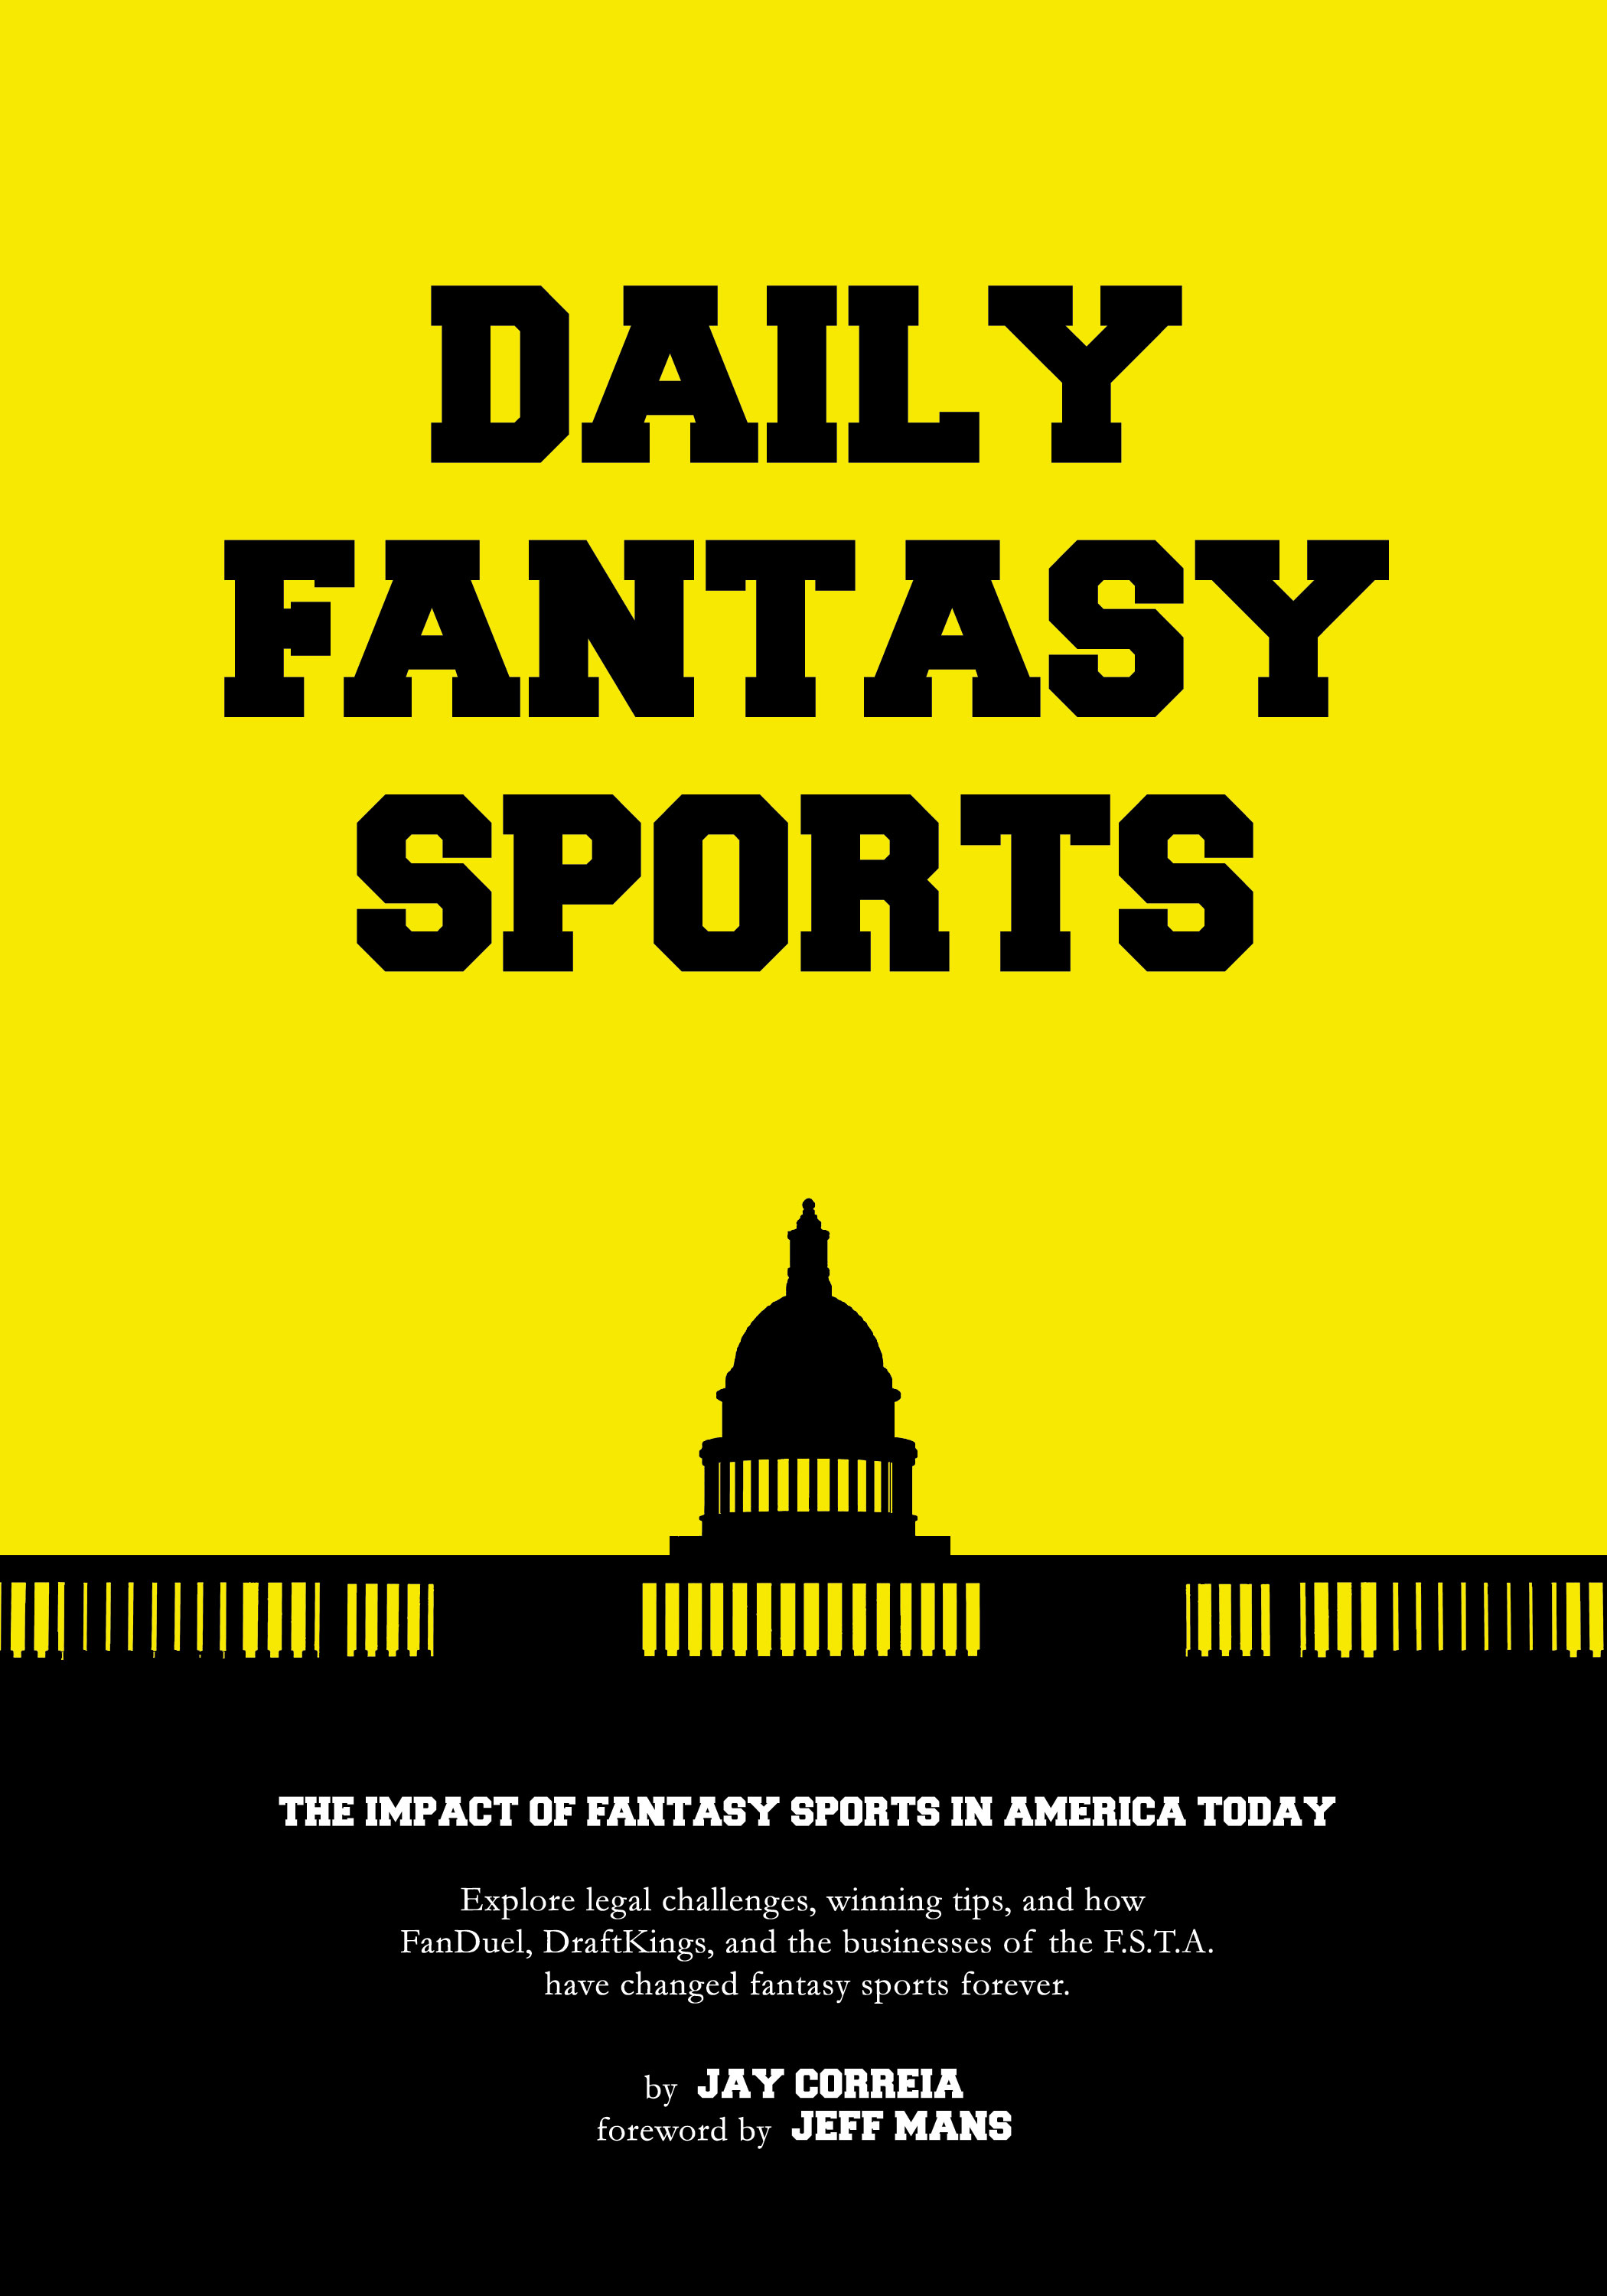 New Book Sheds Light on Fragile Daily Fantasy Sports Industry